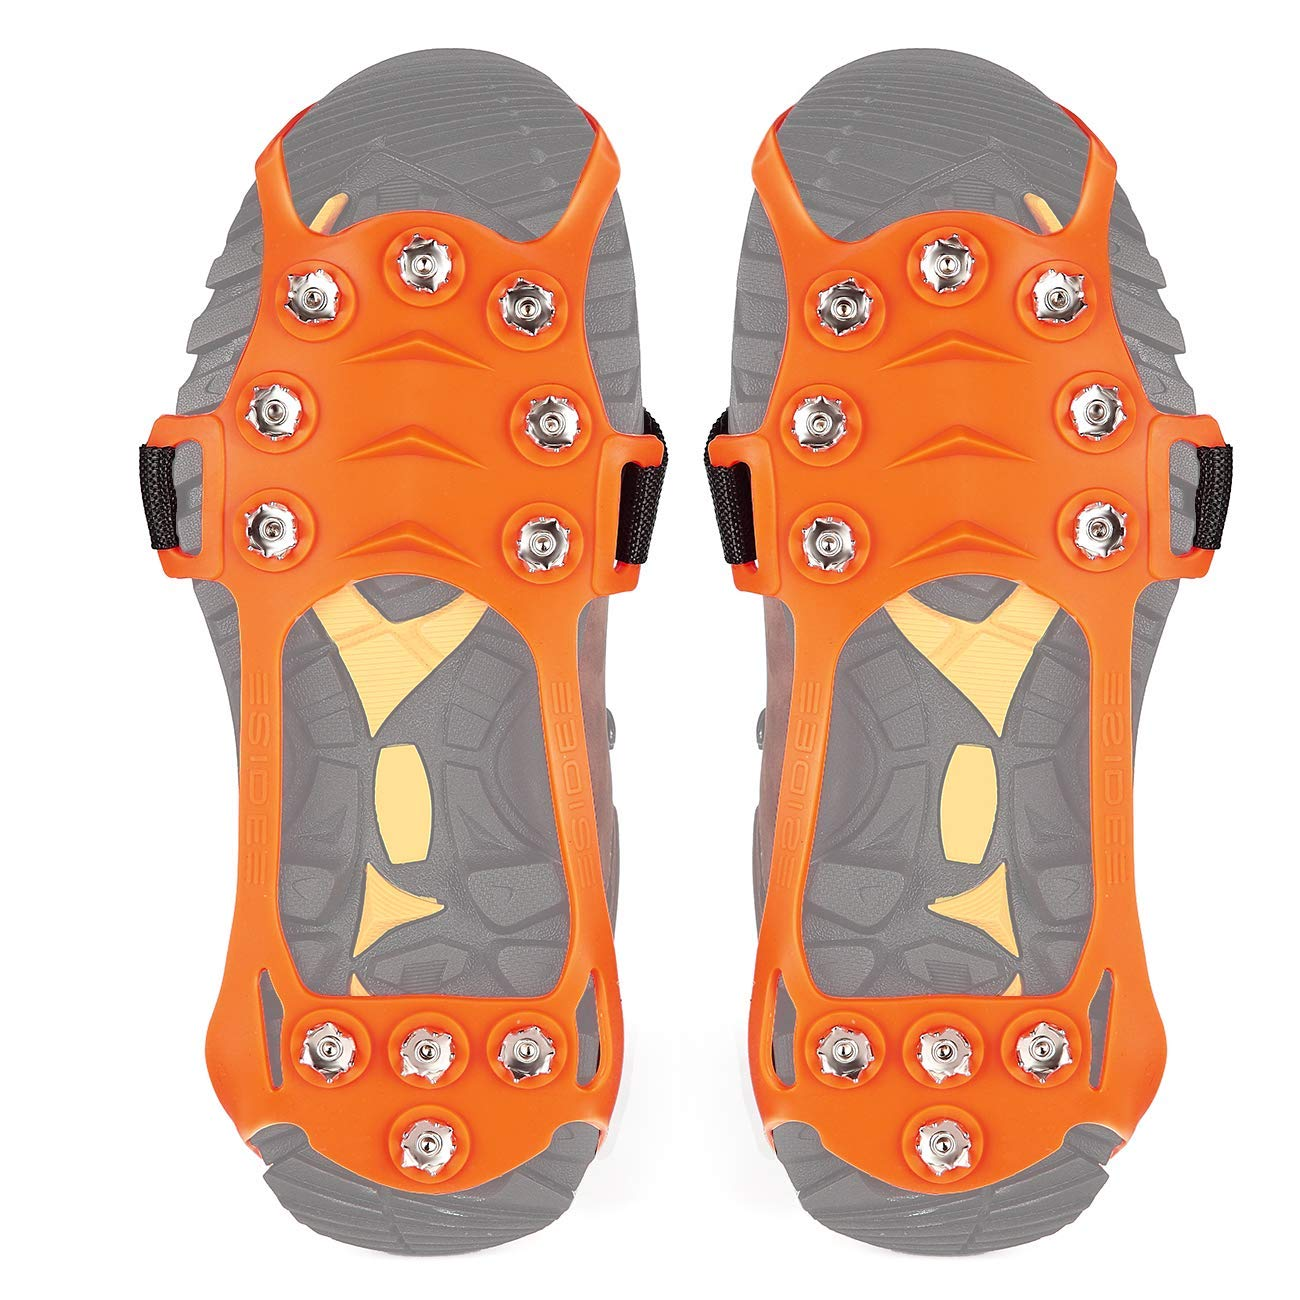 Wirezoll Traction Cleats, Upgraded Version of 10 Teeth Stainless Steel Spikes Durable Silicone, Portable Walk Spikes Cramponsr for Walking, Jogging, Hiking, Mountaineering Ice Snow Grips